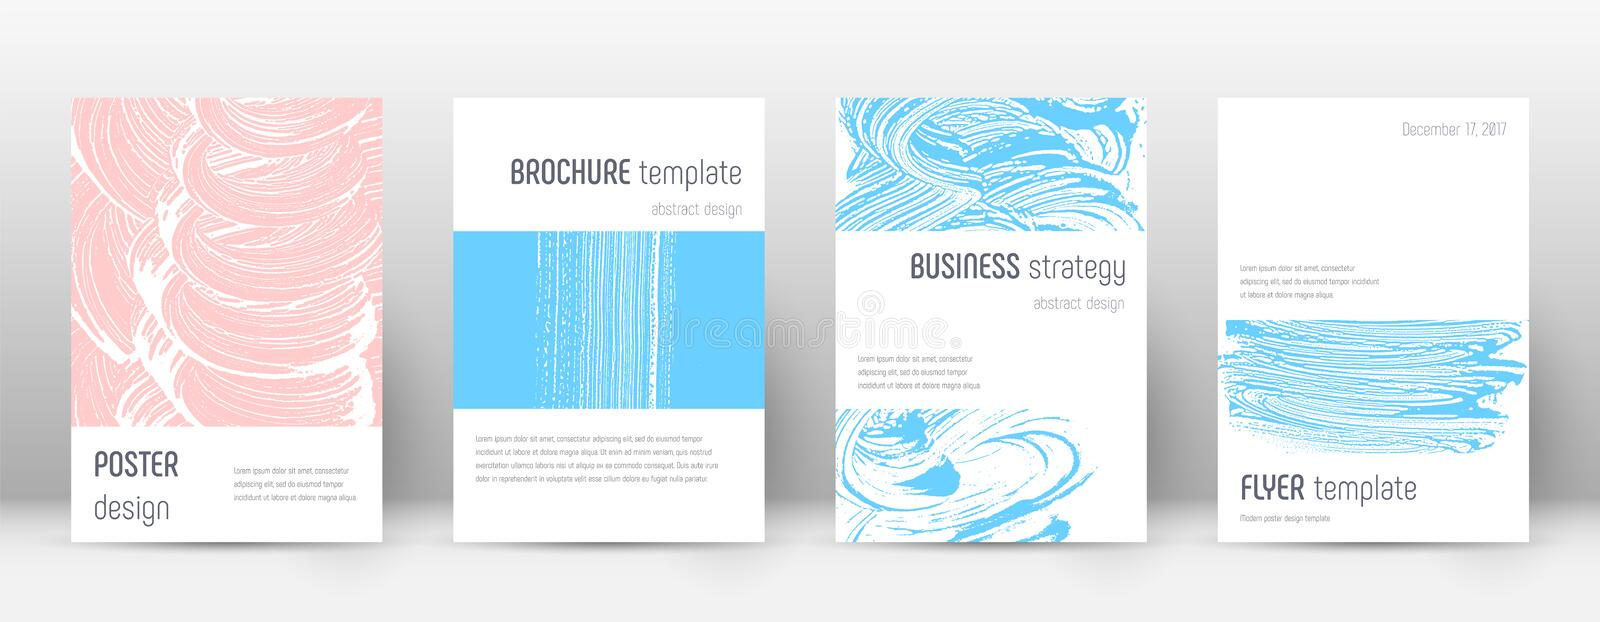 Cover page design template. Minimalistic brochure layout. Breathtaking trendy abstract cover page. vector illustration